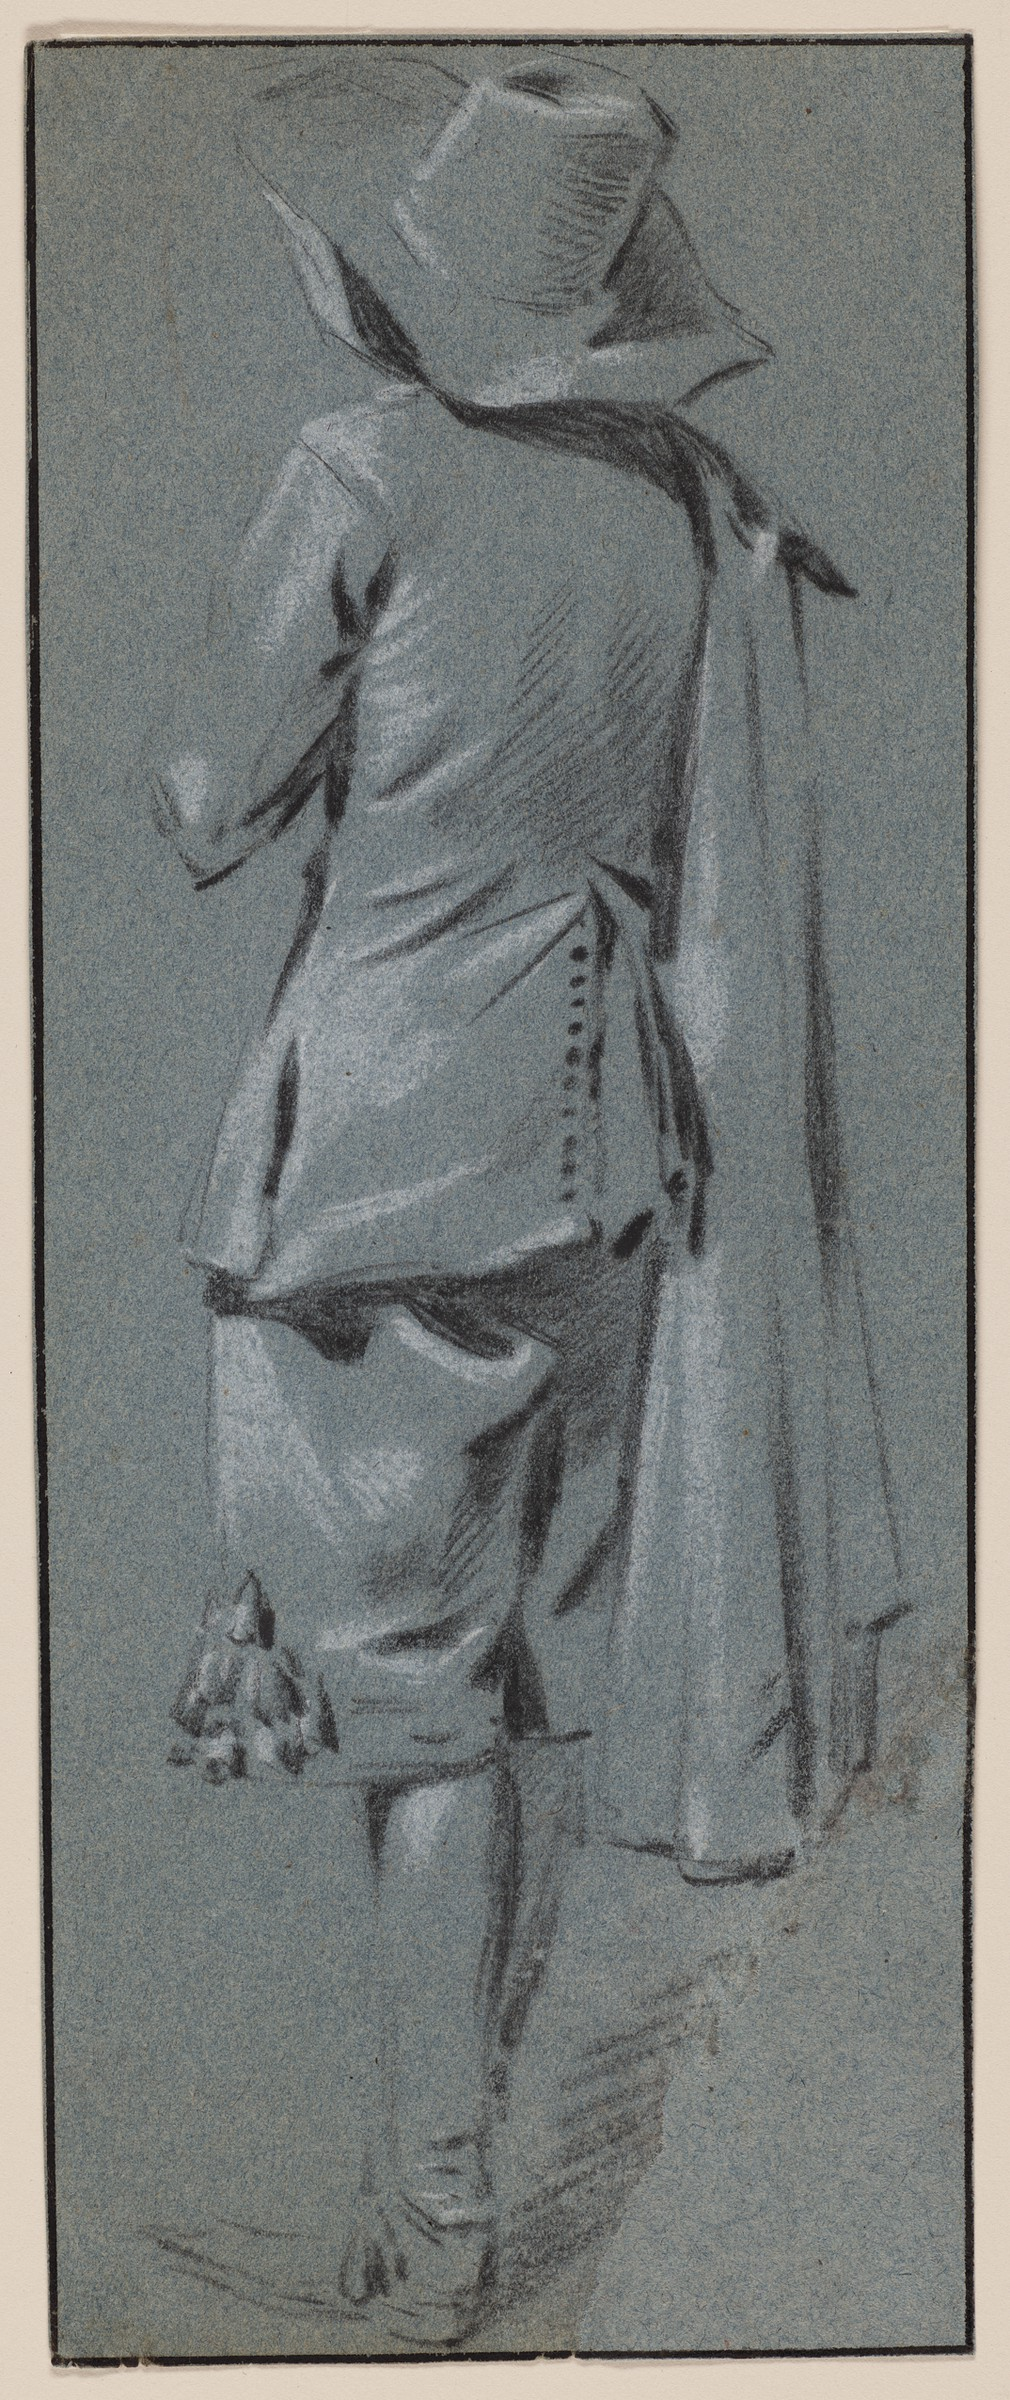 The black and white drawing on blue-gray paper depicts a young man facing away from the viewer. He wears a floppy wide-brimmed hat, a fitted coat with buttons up the back vent, breeches, and boots, and he has a cloak slung over his right shoulder.